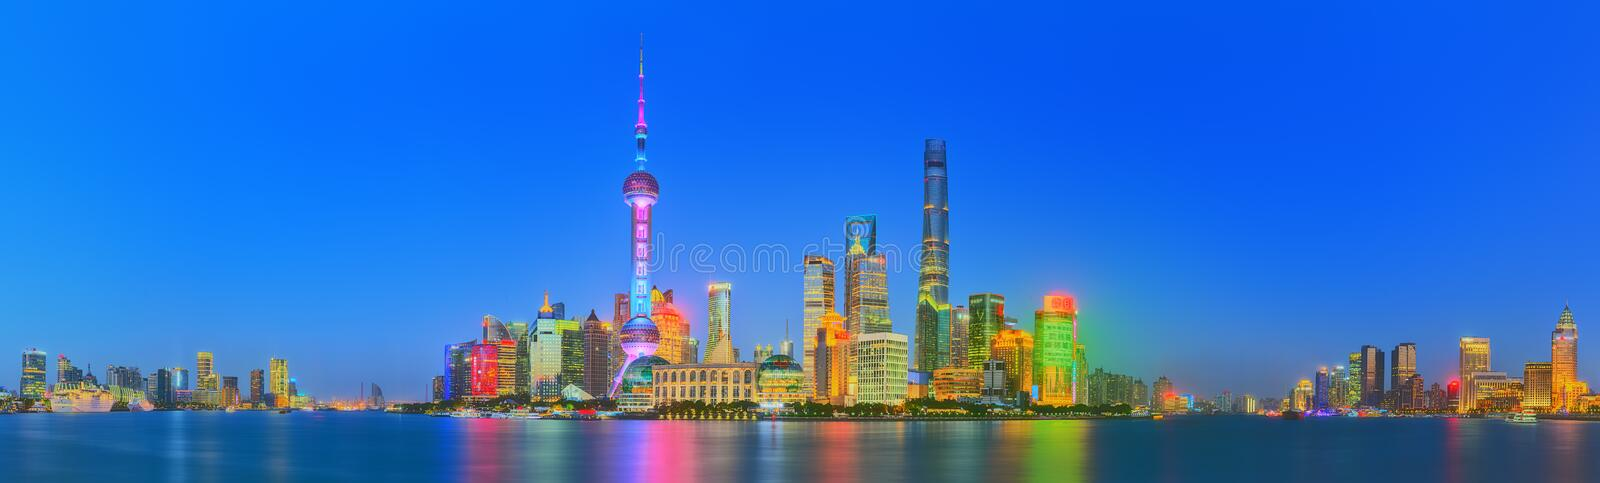 Beautiful night Shanghai's cityscape with the city lights on the Huangpu River, Shanghai, China.  royalty free stock photo